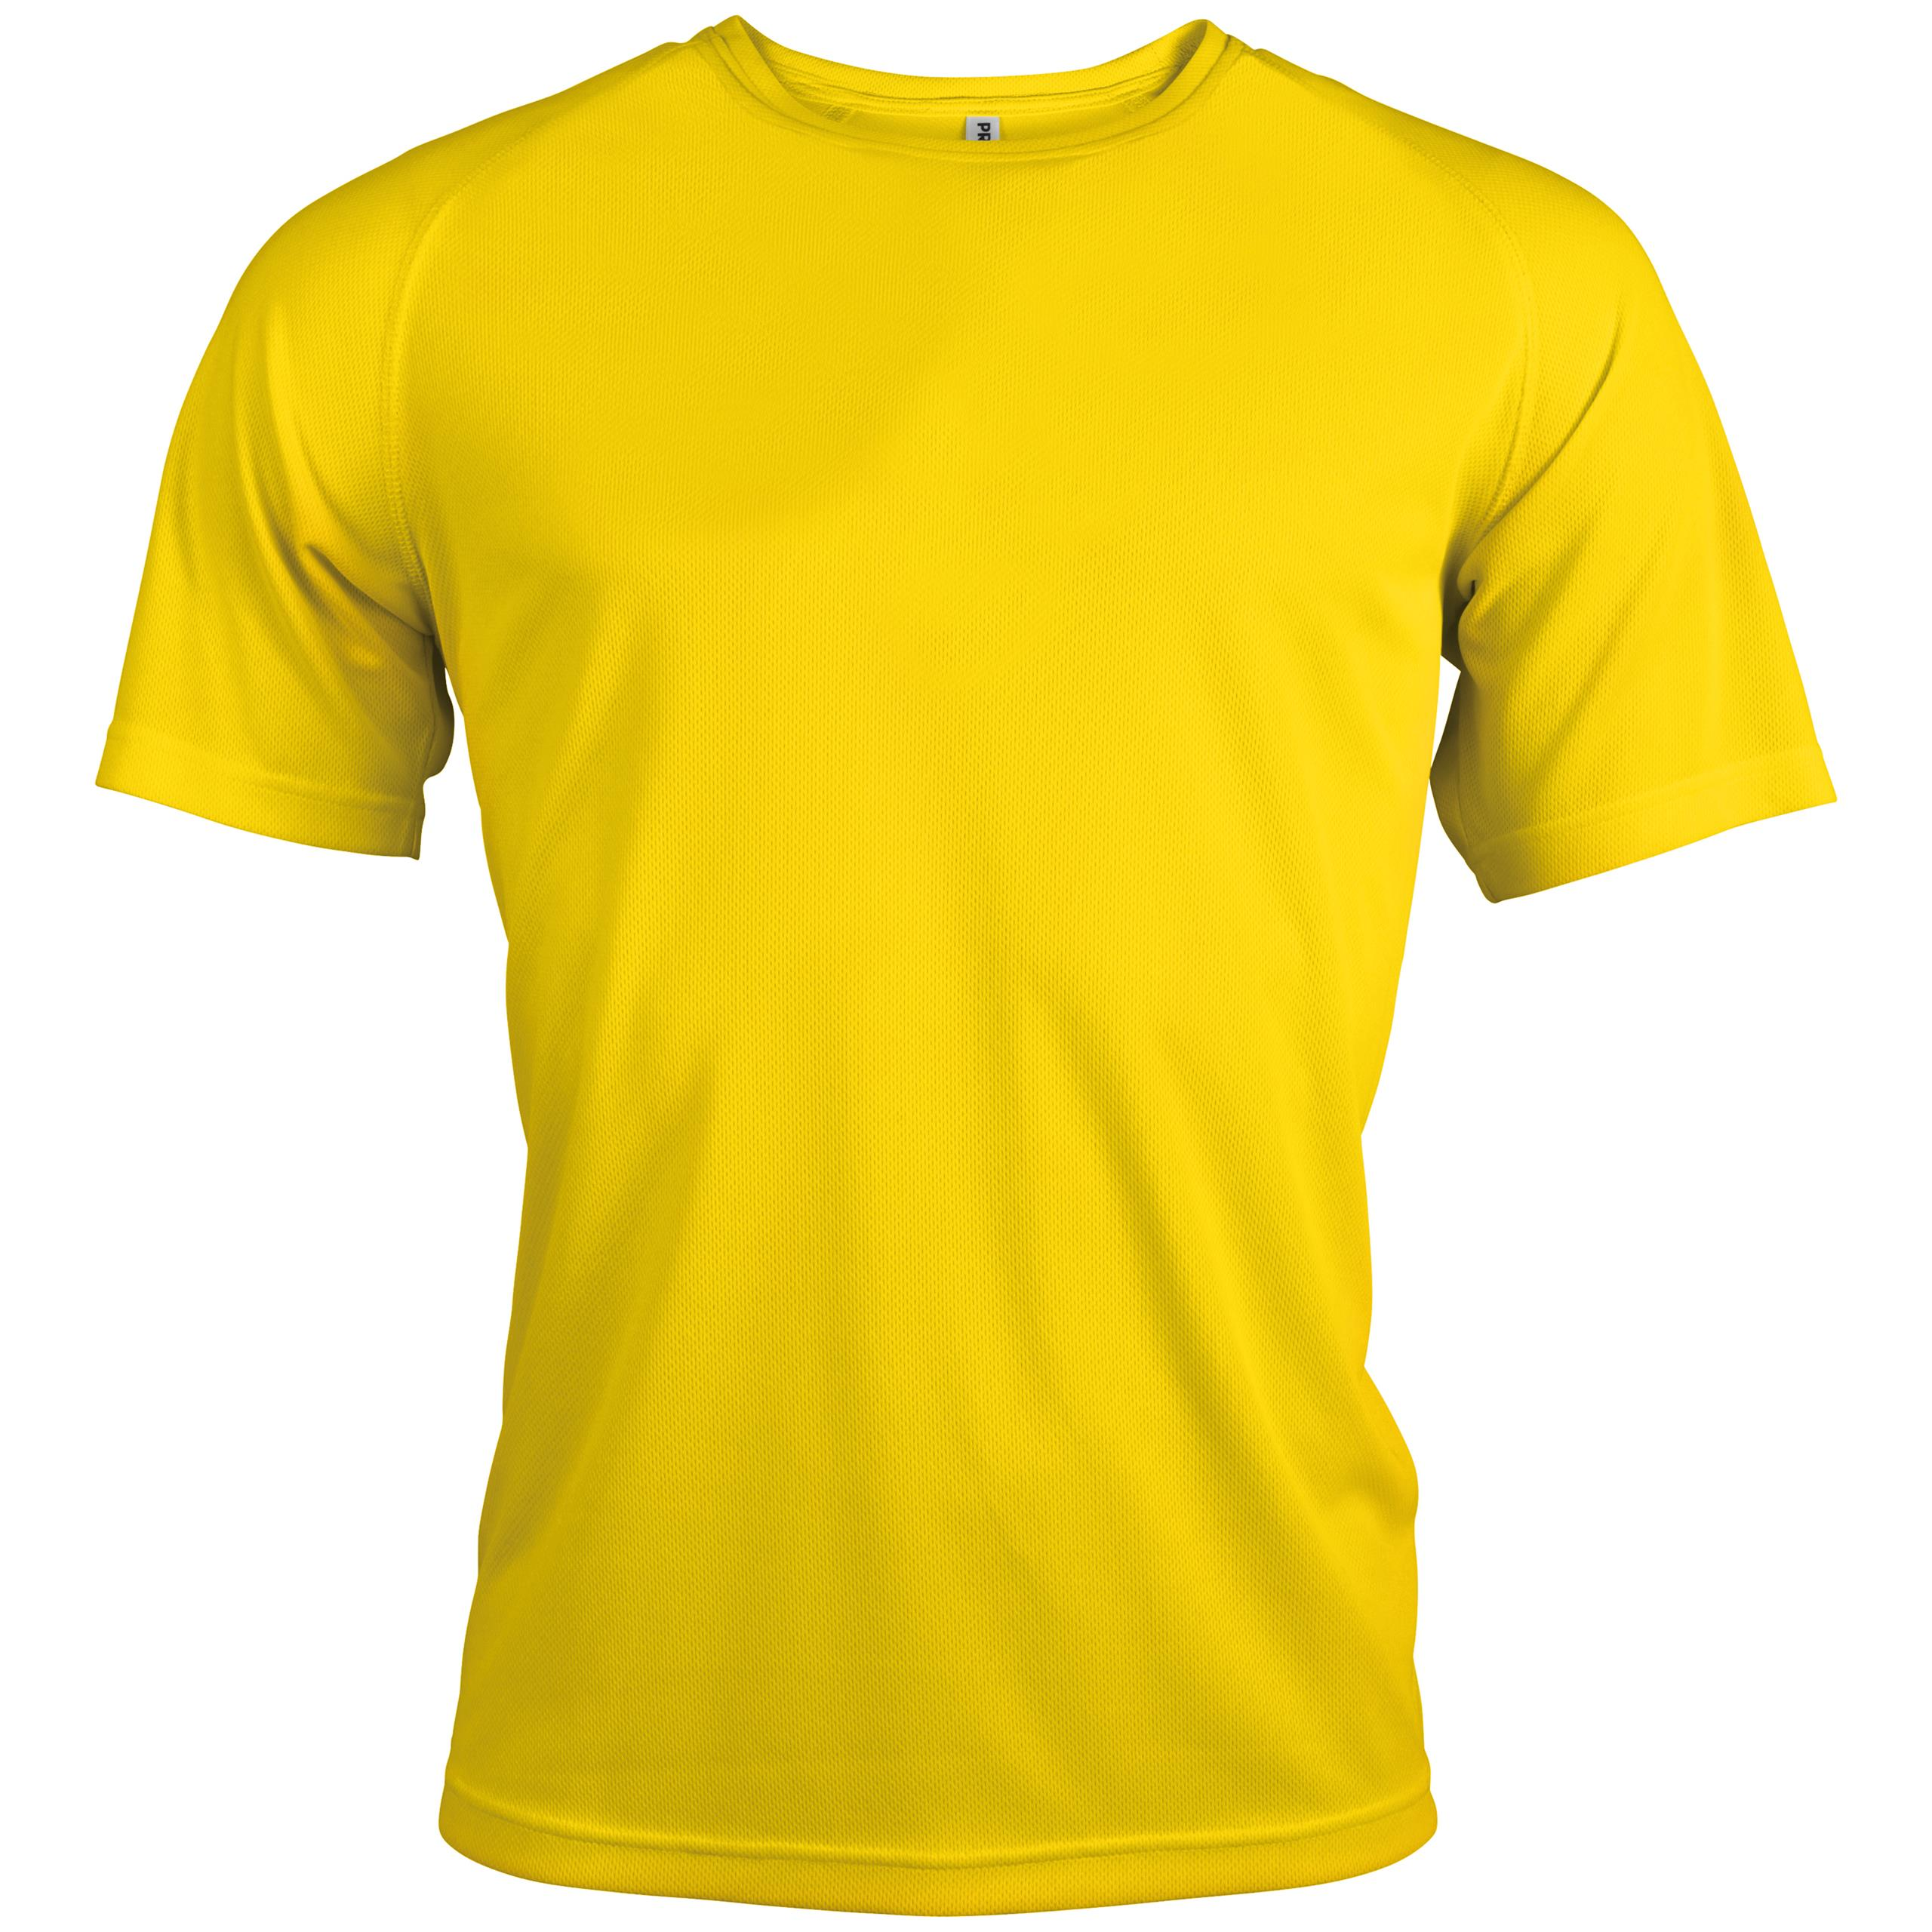 Helpful Mens Kariban Proact Lightweight Cover Stitch Crew Neck Sports Tshirt Size S-xxl Clothing, Shoes & Accessories Activewear Tops